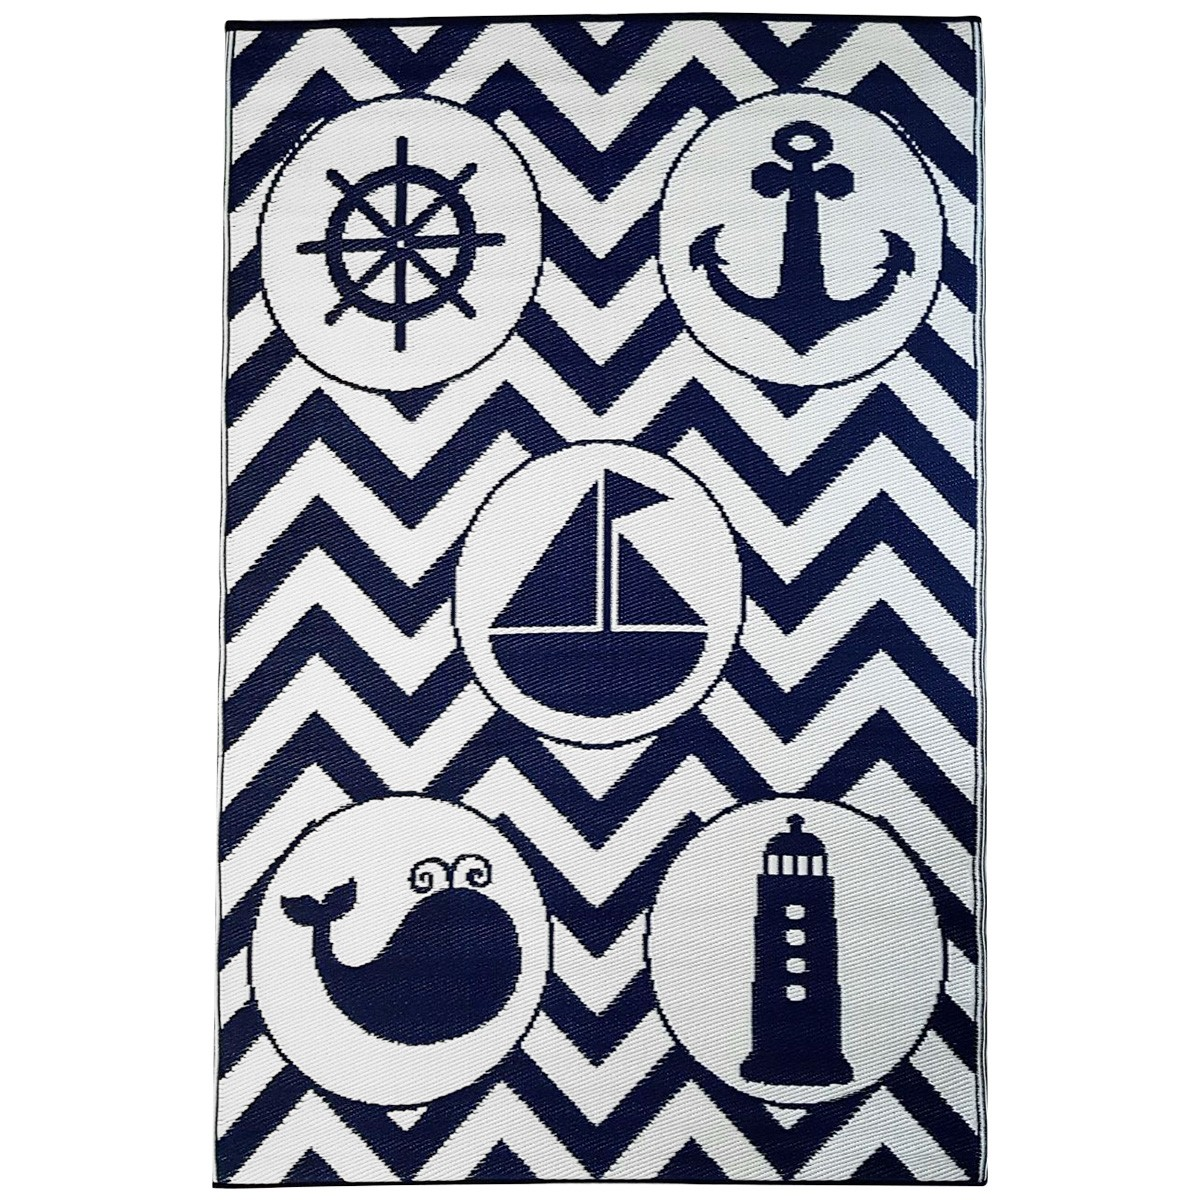 Little Portico's Sea Blue Objects Indoor/Outdoor Kids Mat, 180x270cm